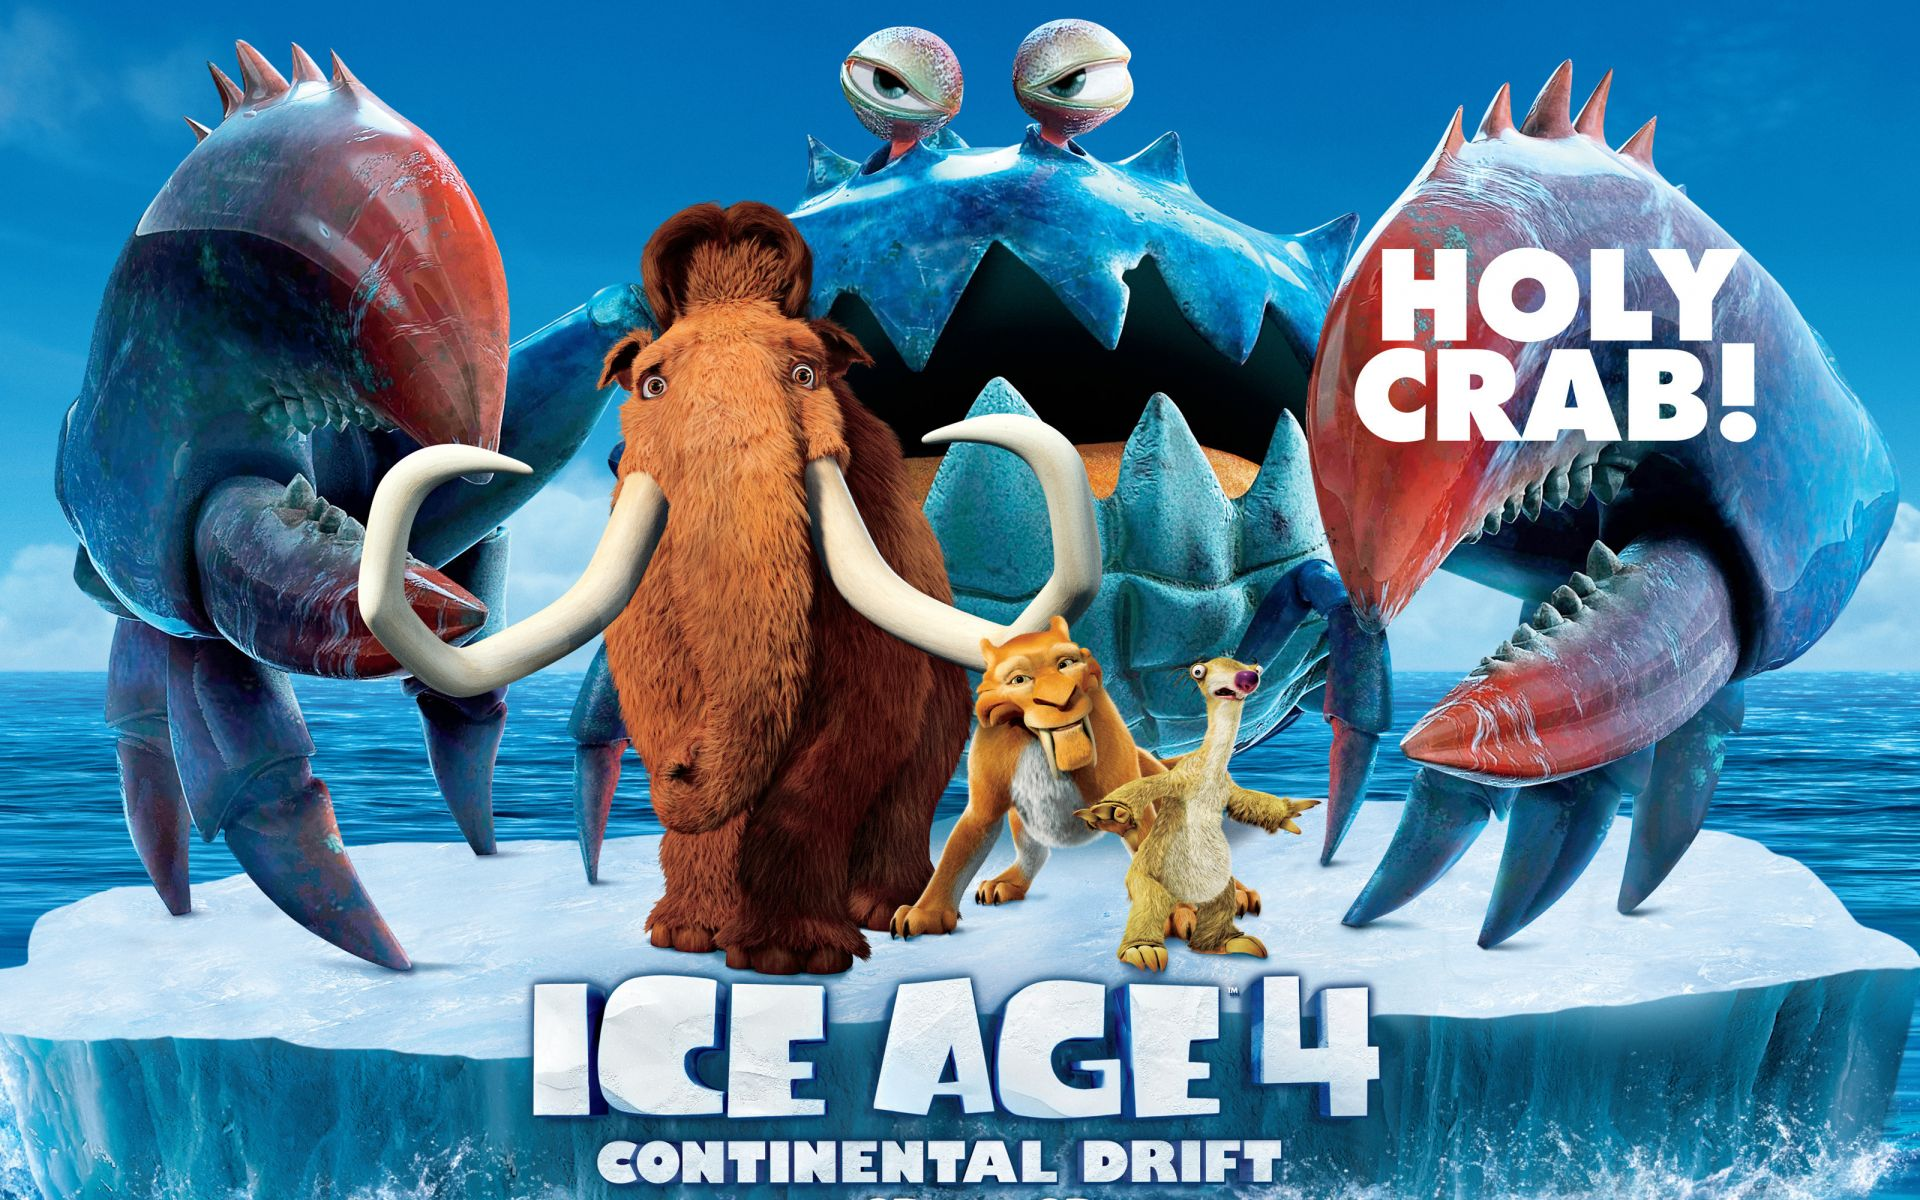 ice age 4 ice age 4 gang floe characters